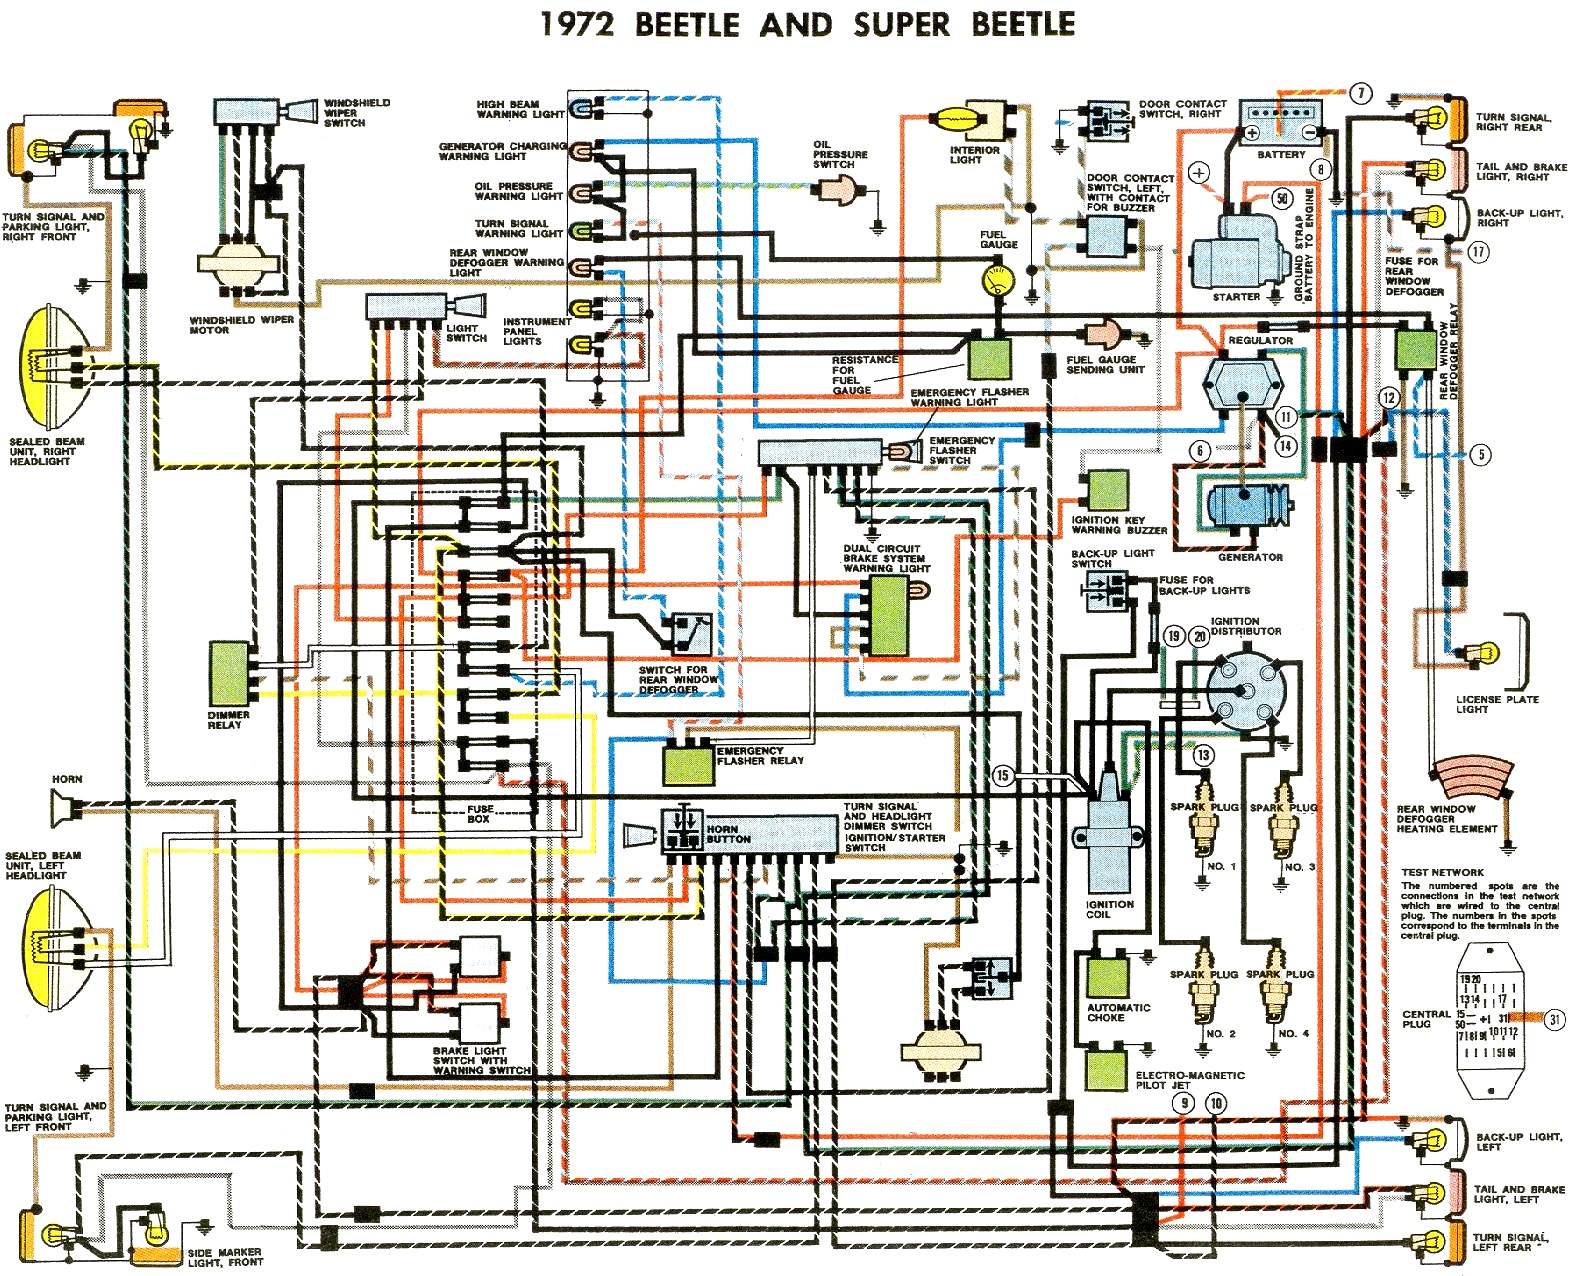 bug_72 vw mk1 wiring diagram 56 vw bug wiring diagram \u2022 wiring diagrams vw beetle wiring harness at readyjetset.co